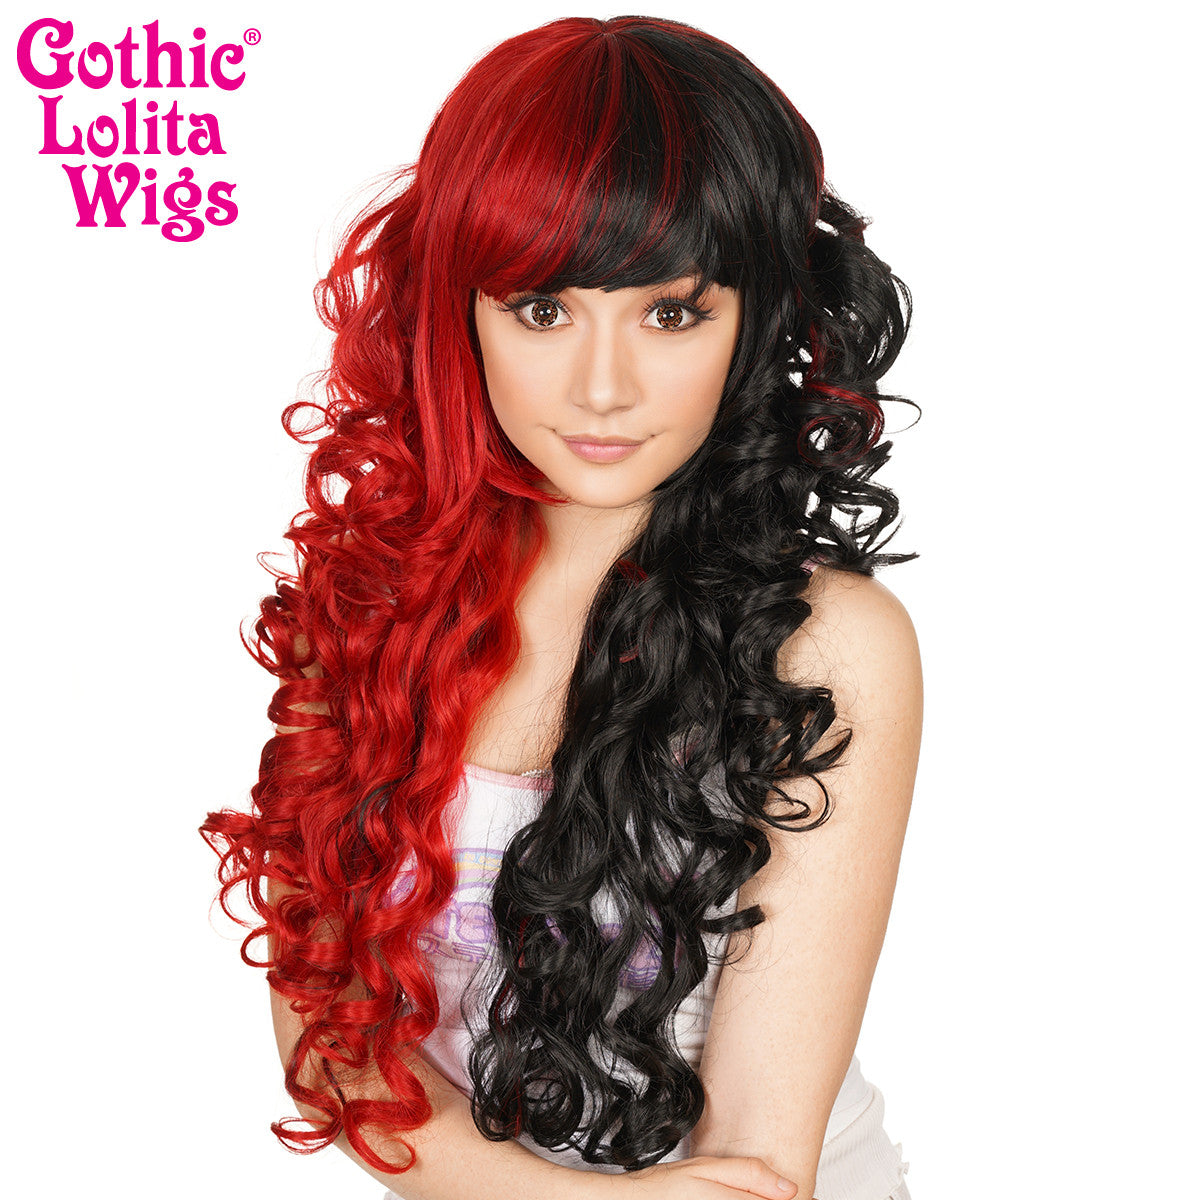 Gothic Lolita Wigs® <br> Duchess Elodie™ Collection - Black & Crimson Red Split -00049